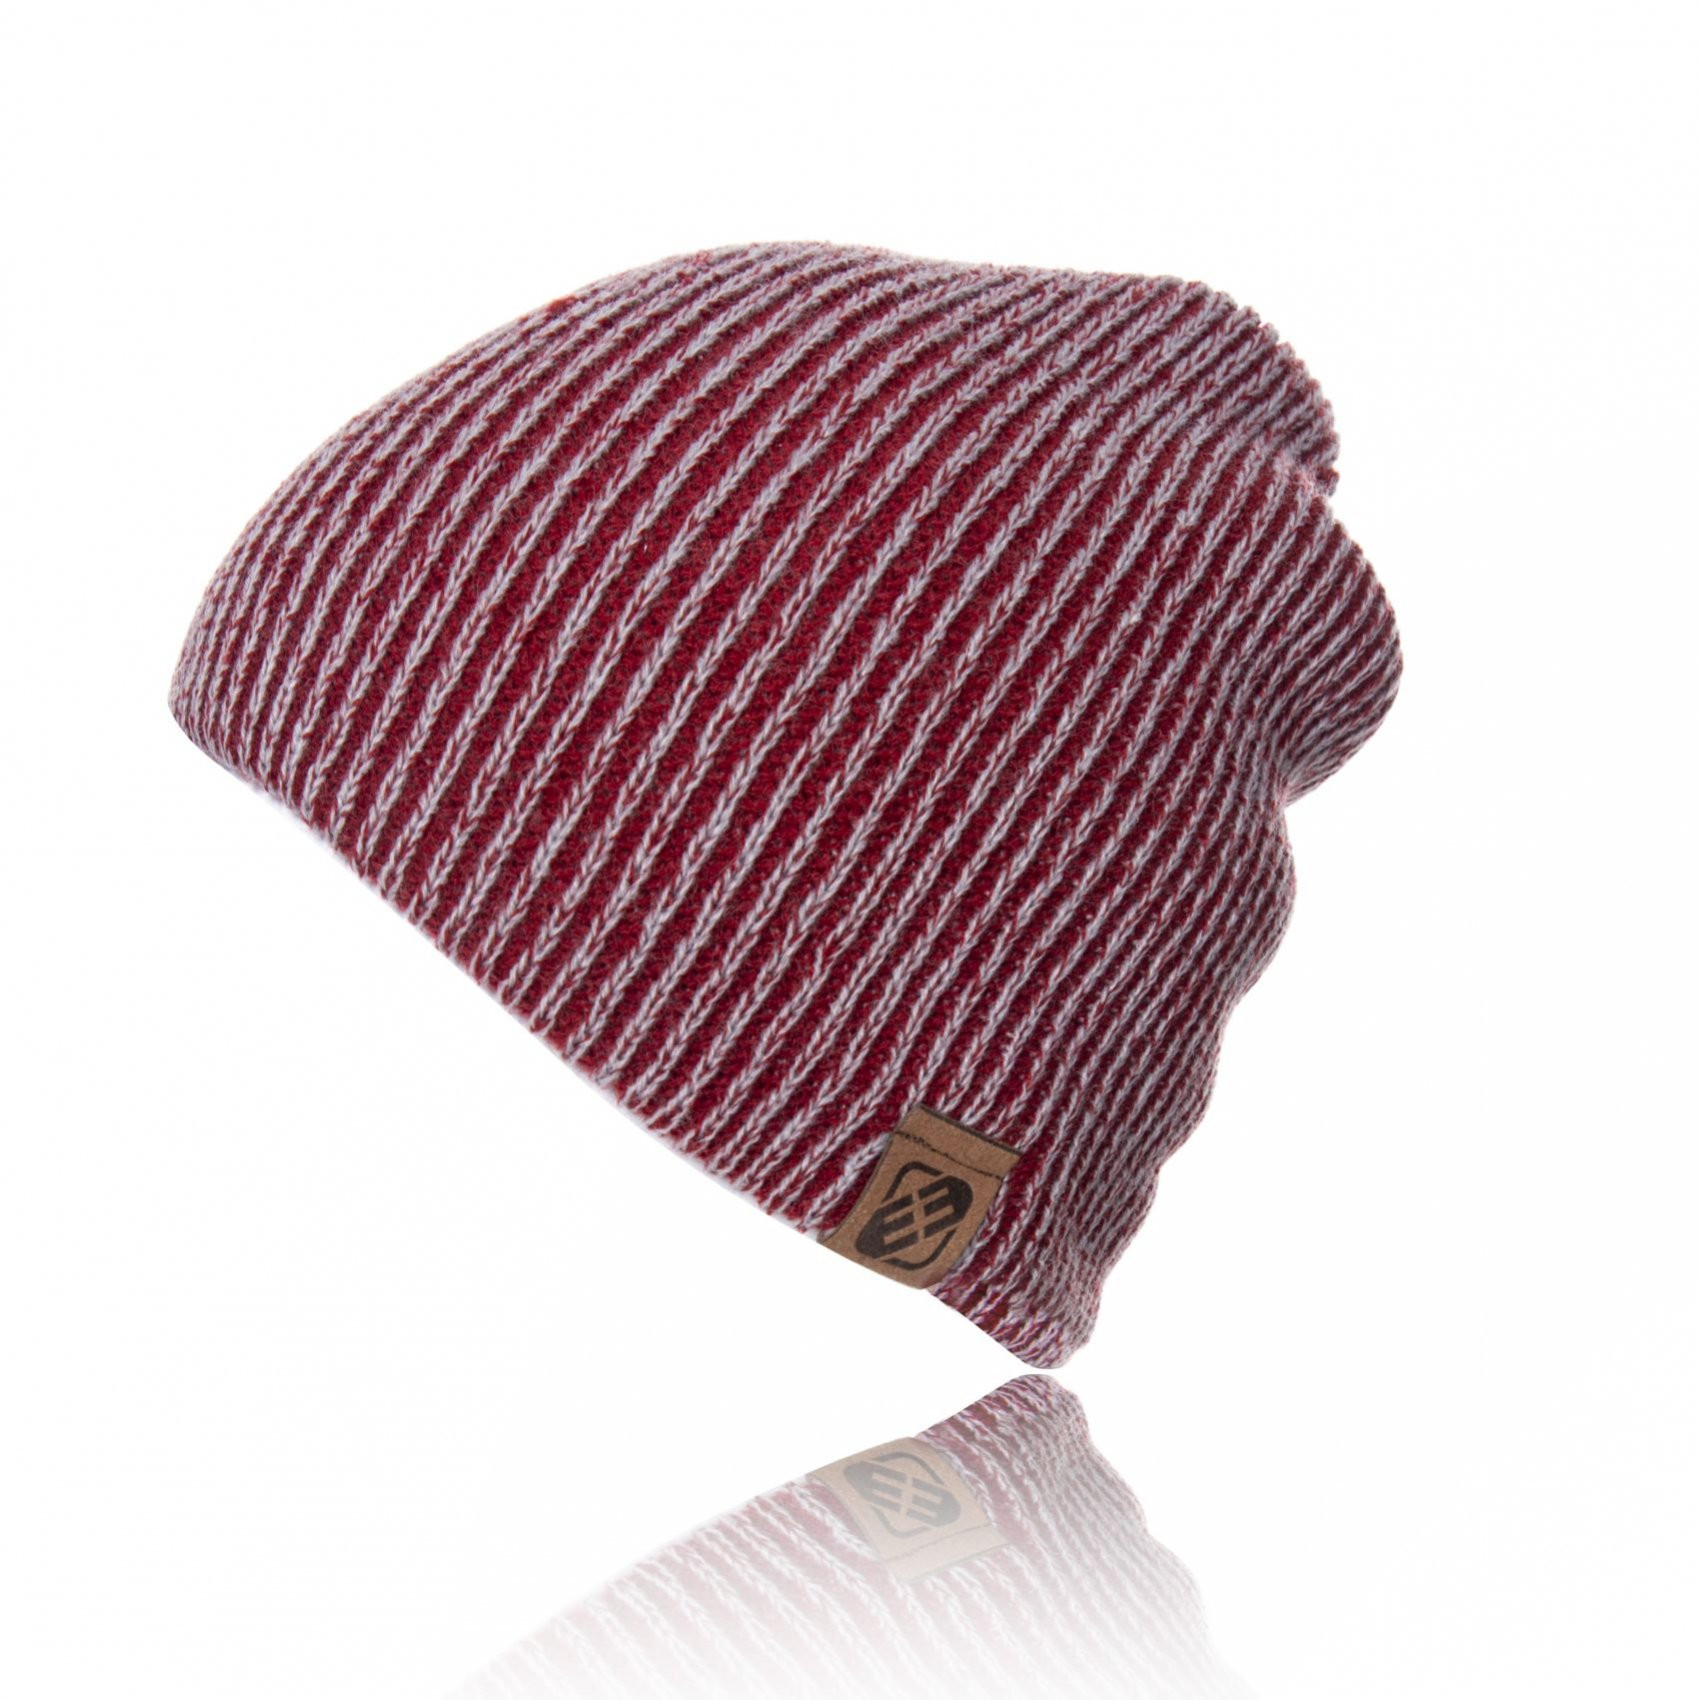 Bonnet bicolore rouge